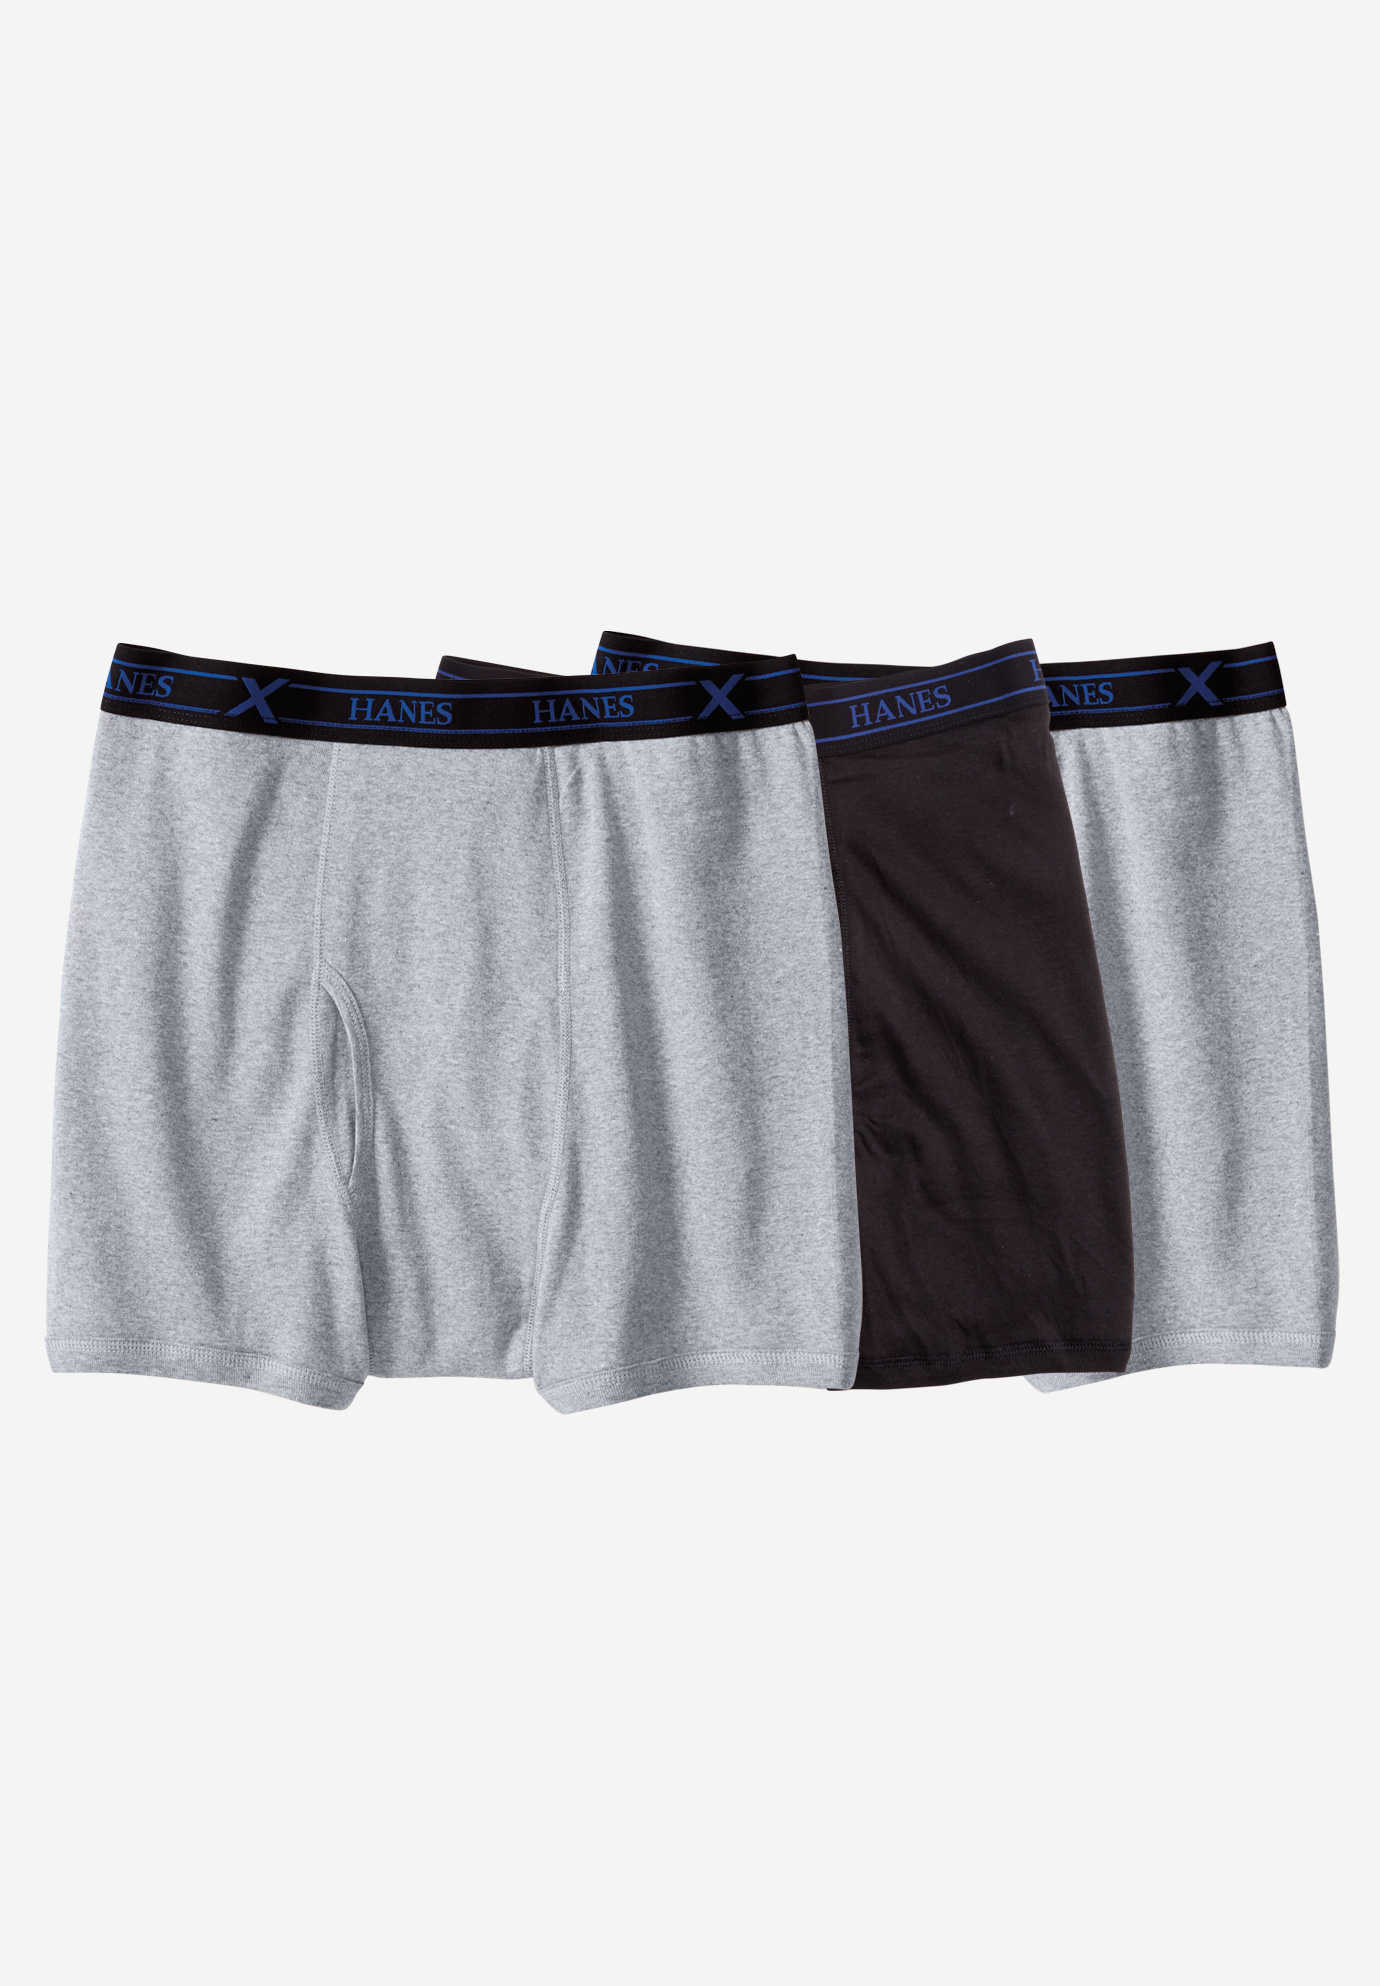 Hanes® X-Temp® Boxer Briefs 3-Pack Underwear,